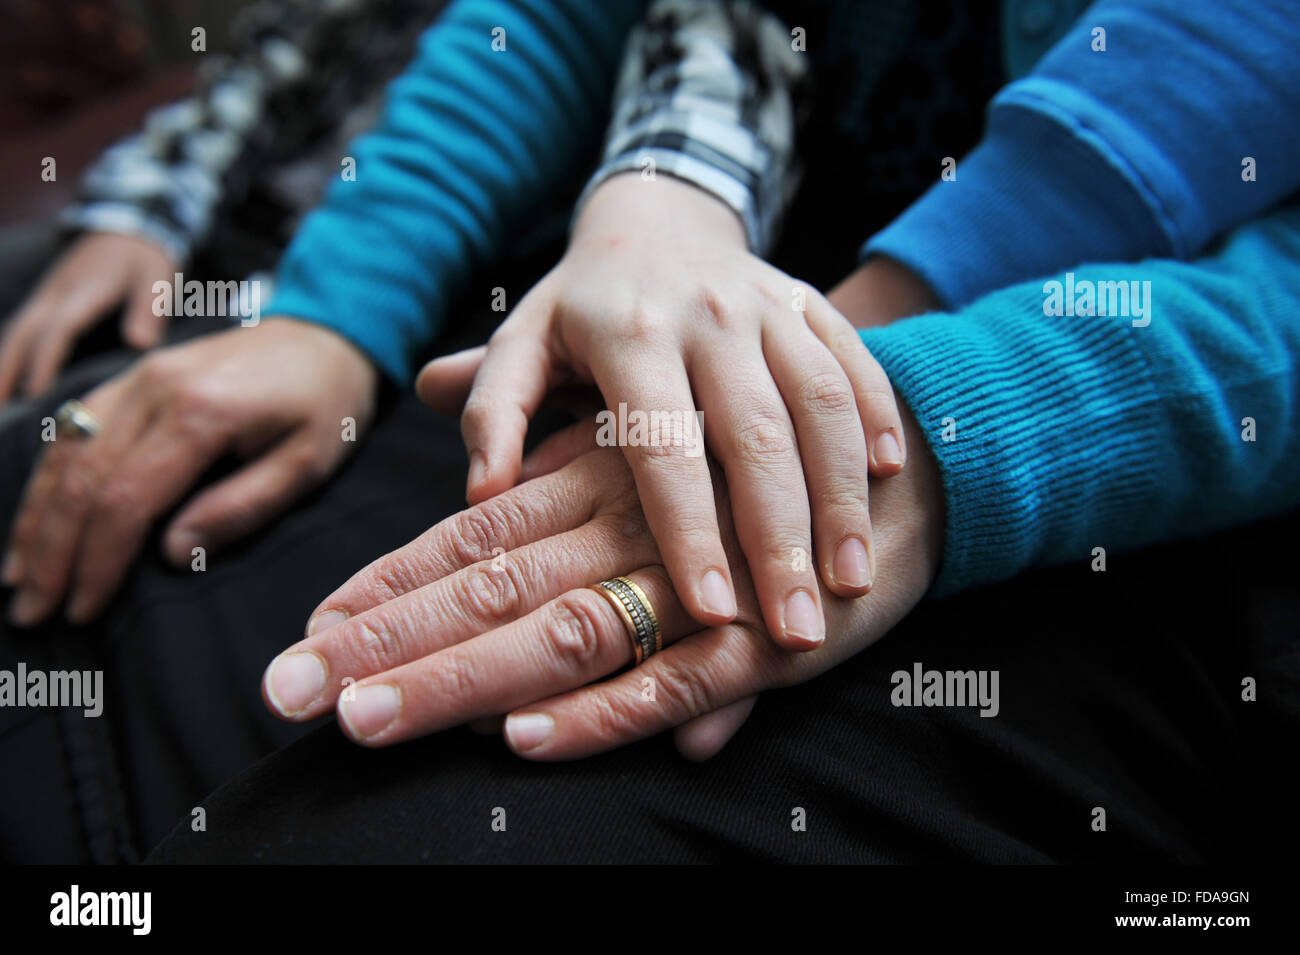 Hands of a Syrian refugee family rescued by the UN and now living in Bradford. UK - Stock Image